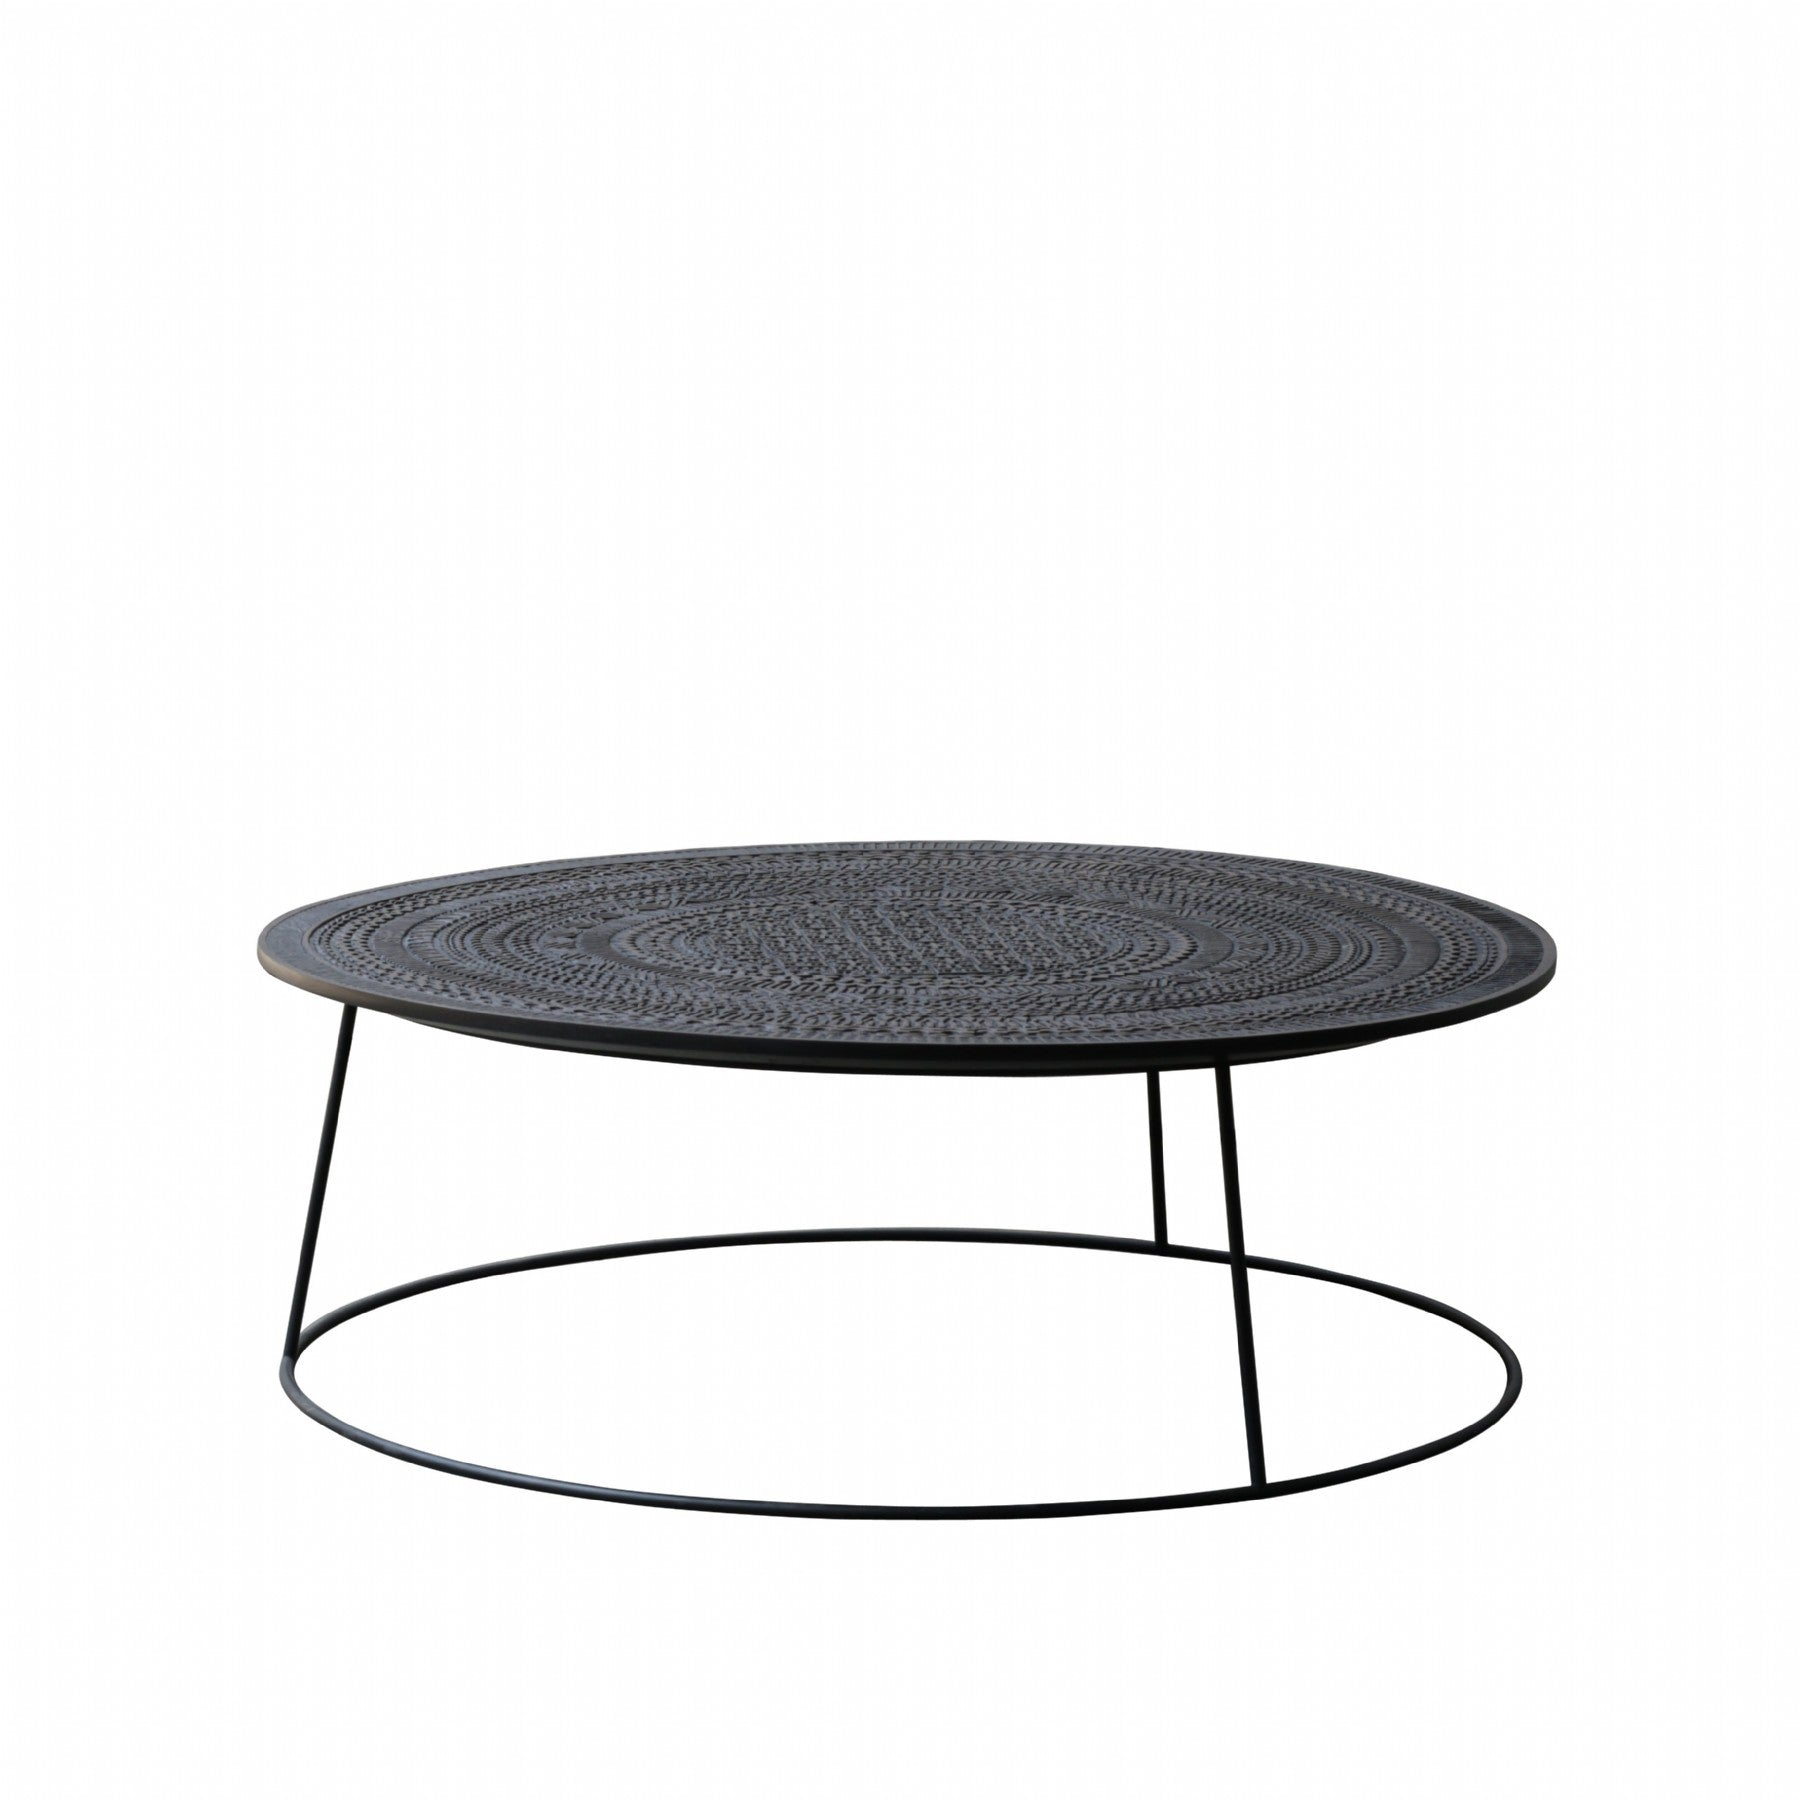 buy Ethnicraft Ancestors Tabwa Round coffee table online